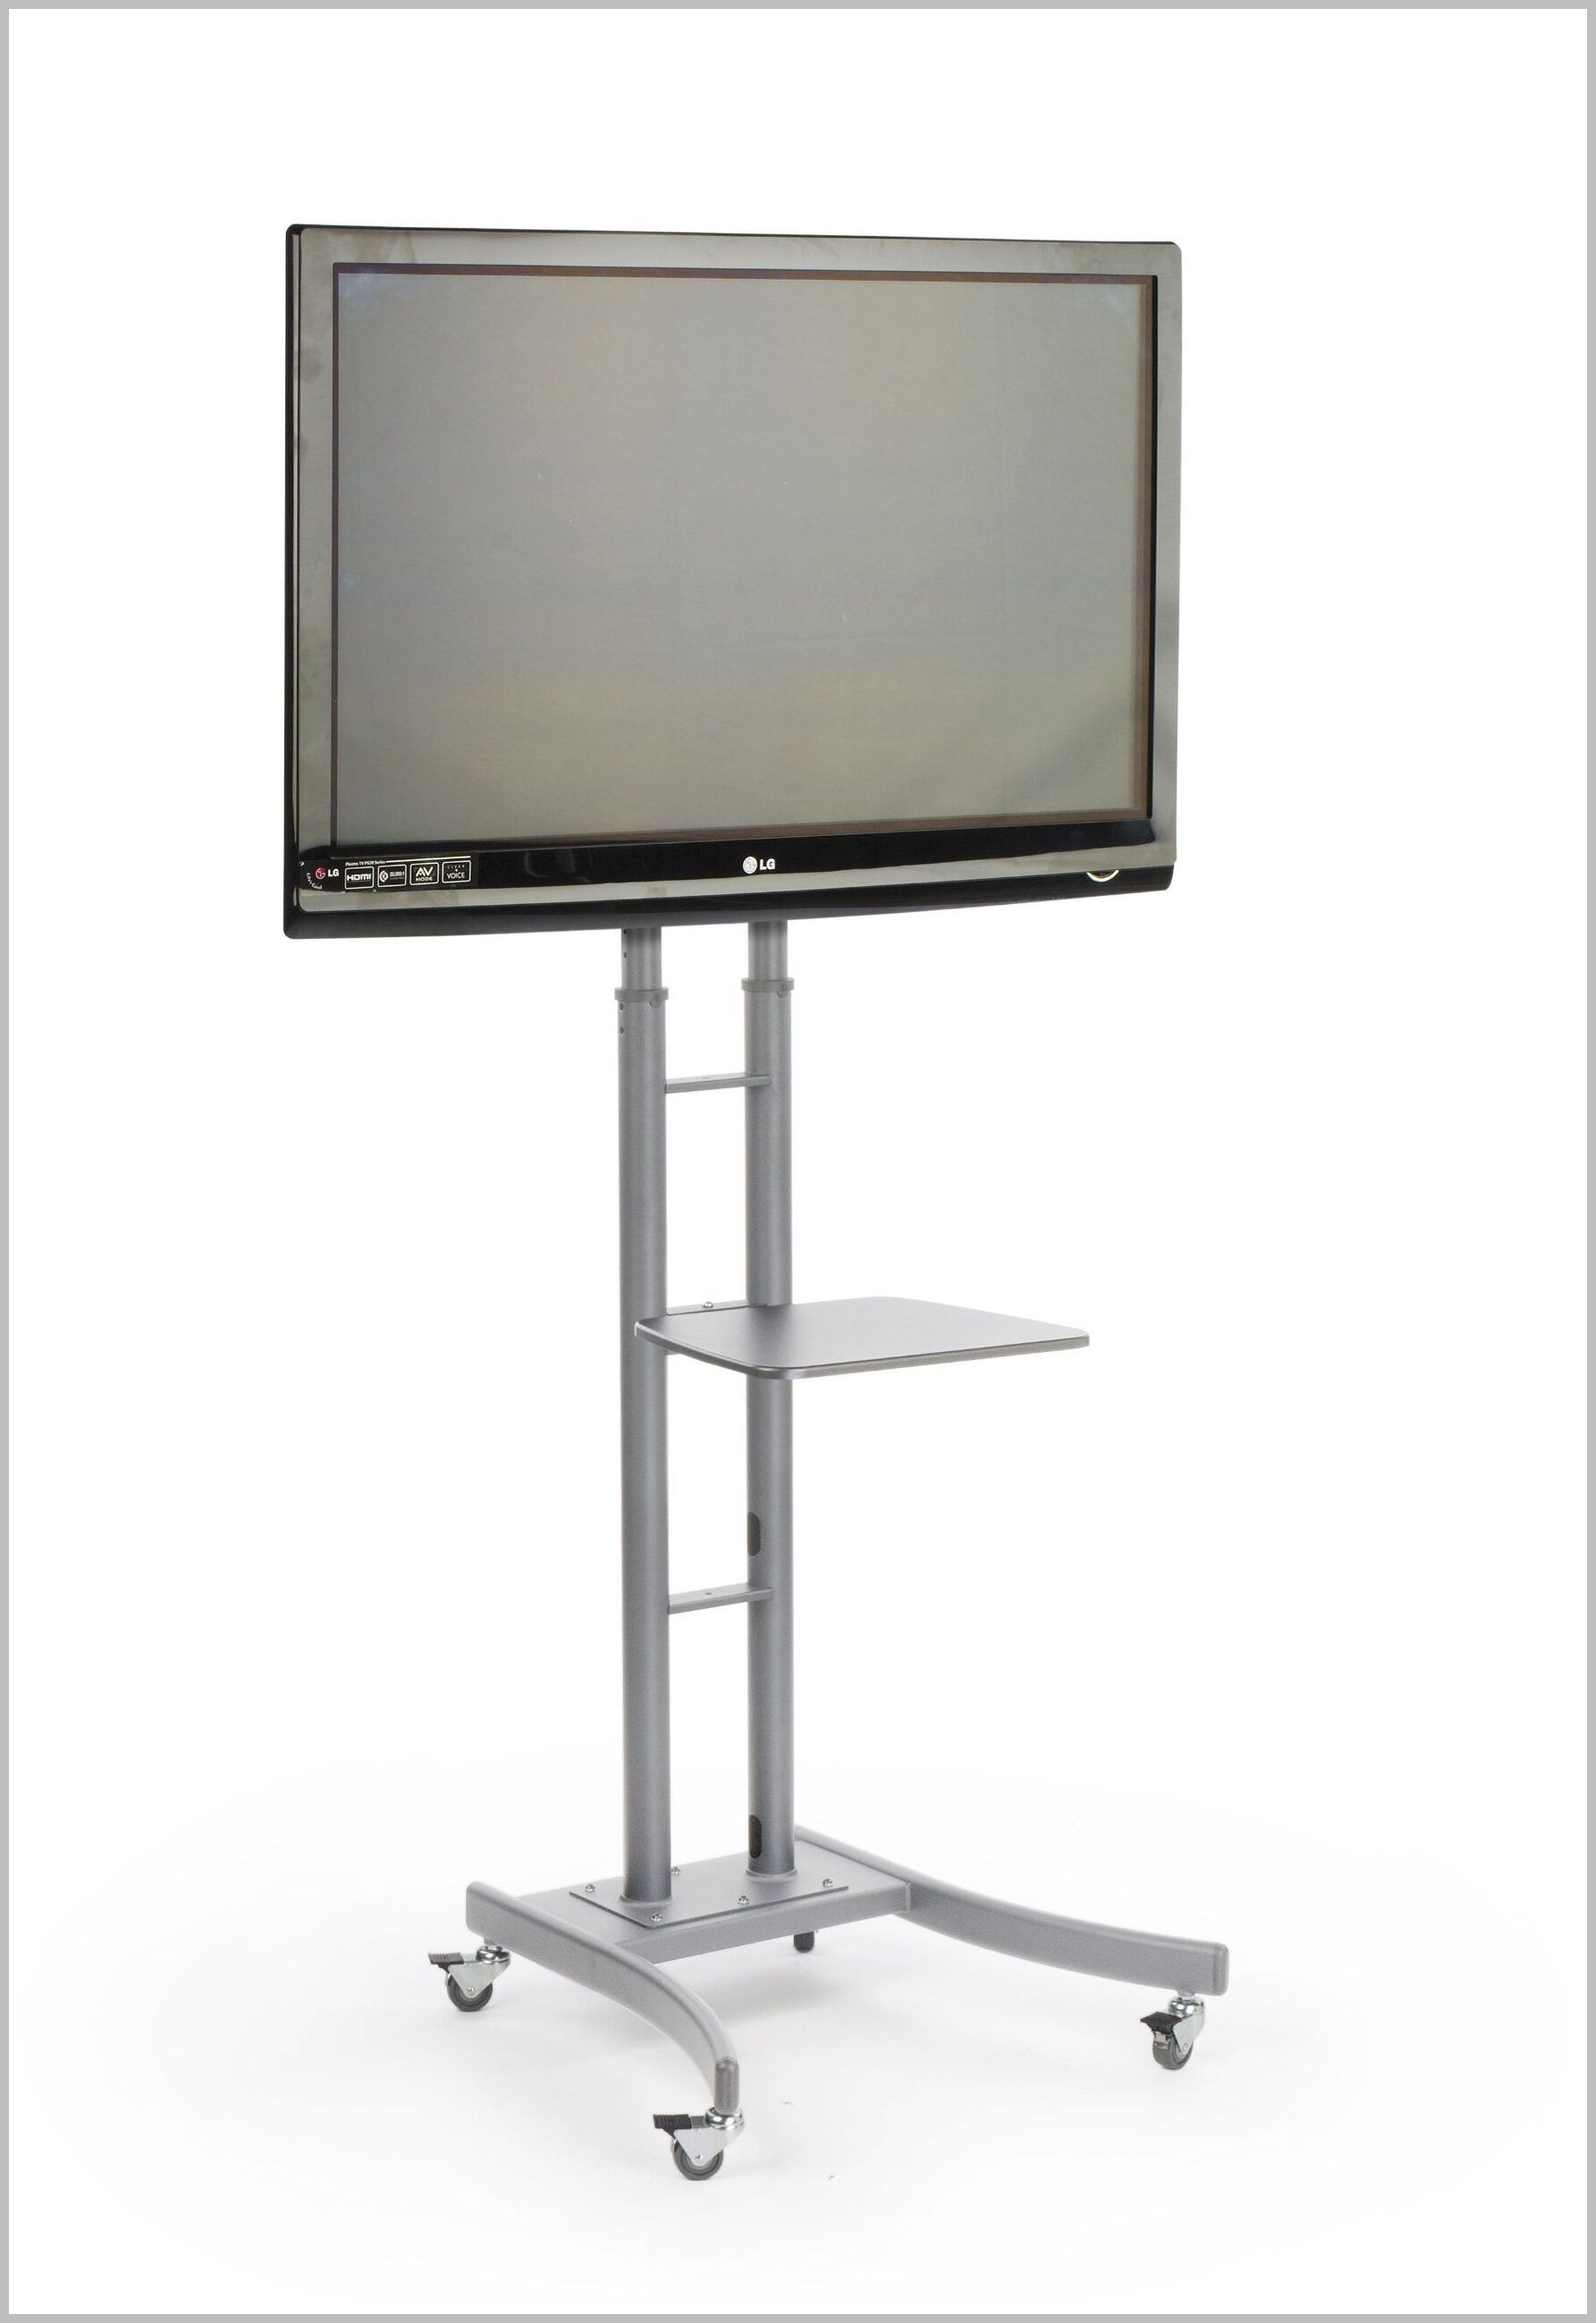 31 tv stand on wheels amazon #tv #stand #on #wheels #amazon Please Click Link To Find More Reference,,, ENJOY!!